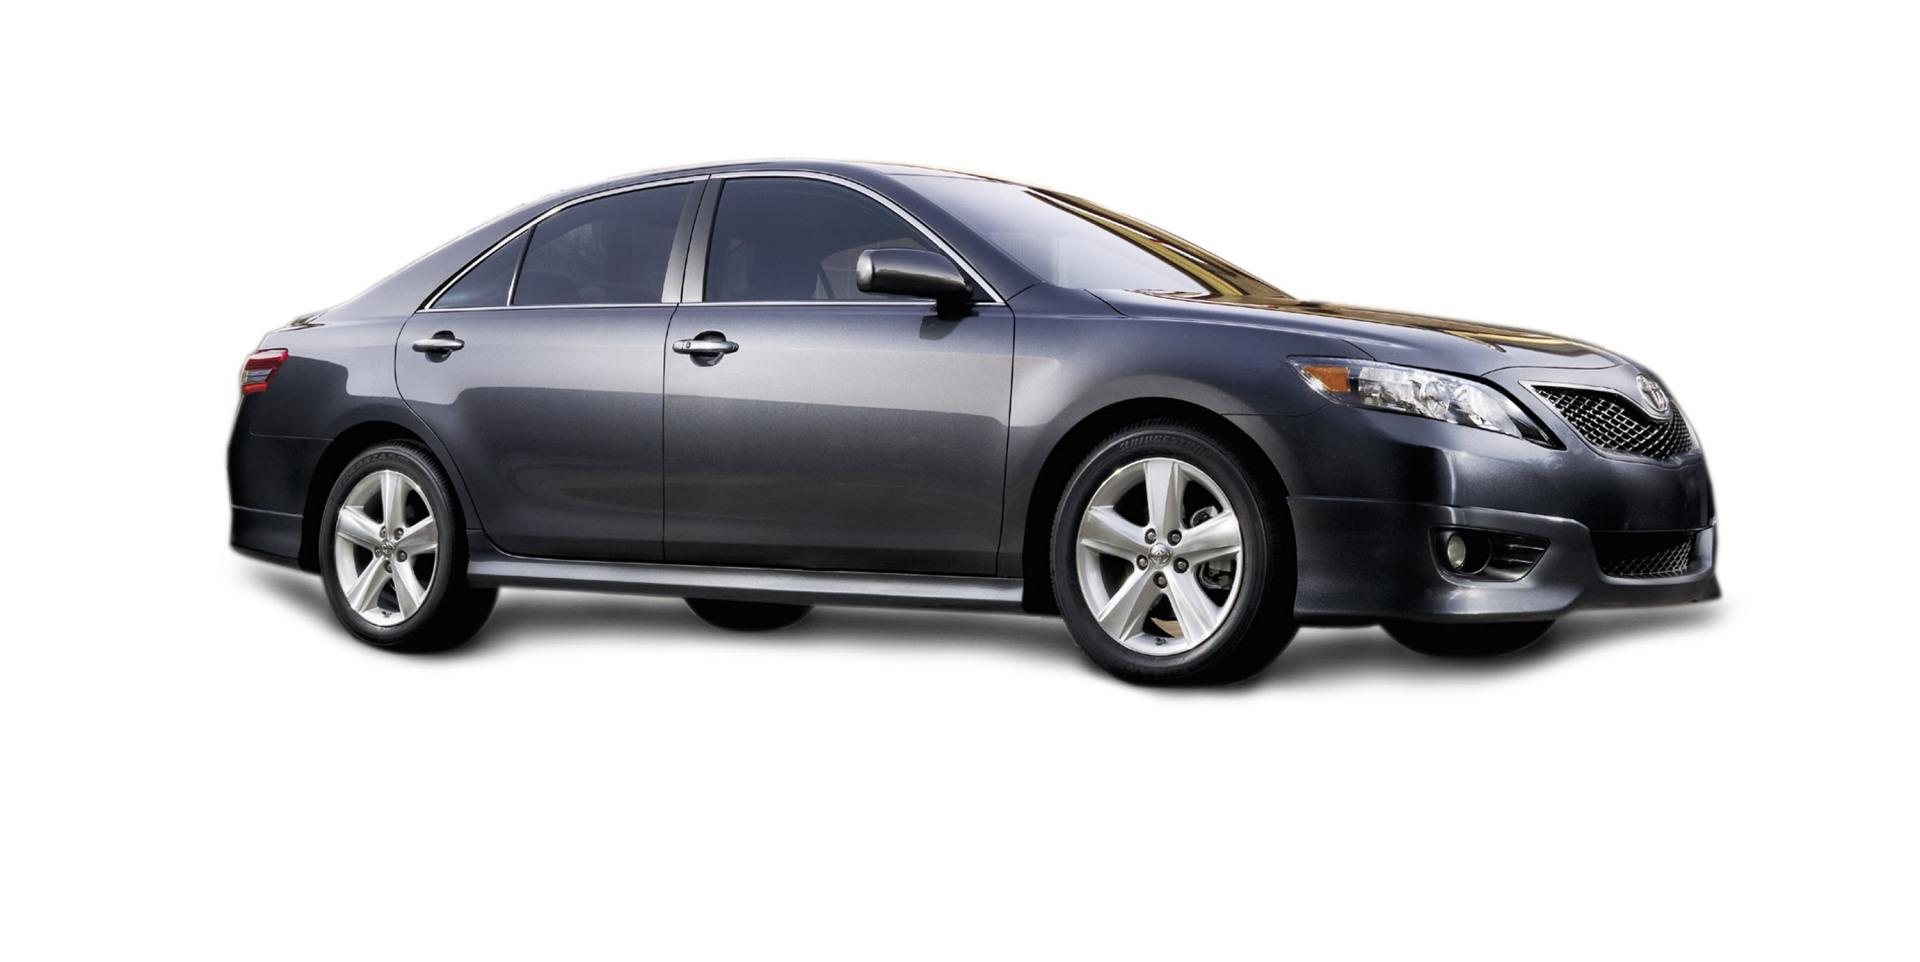 2010 toyota camry technical specifications and data. engine